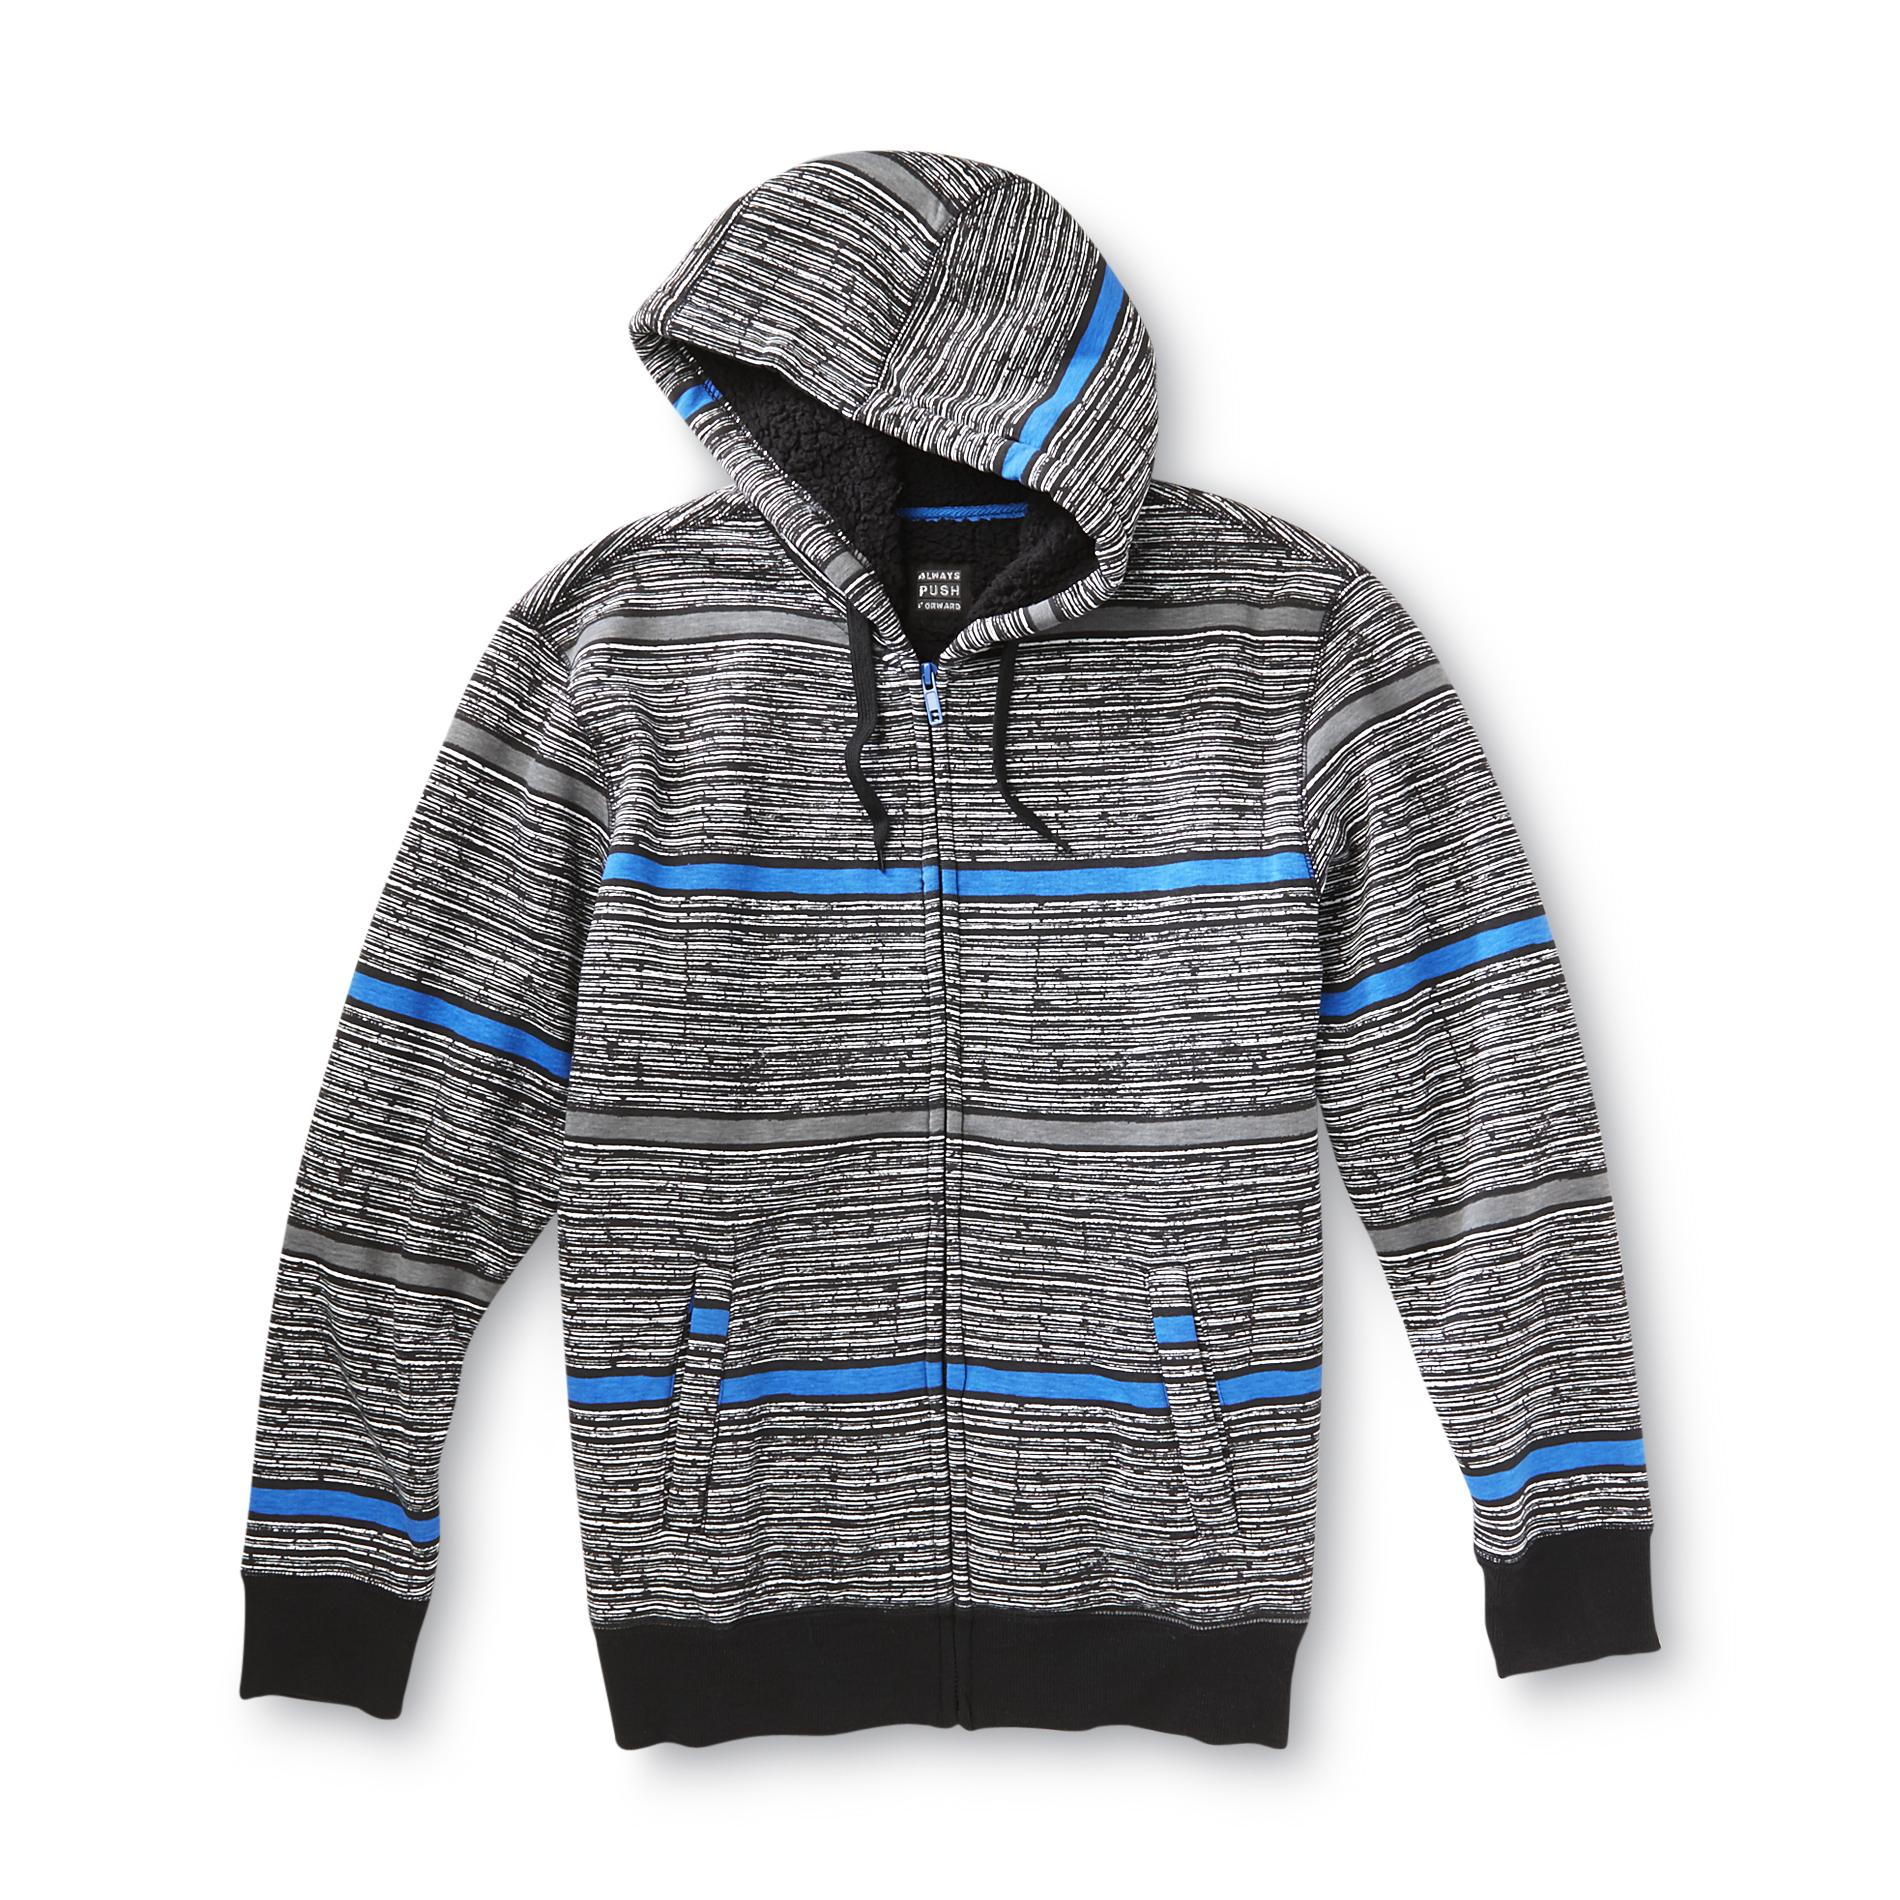 Always Push Forward Men's Hoodie Jacket - Striped at Kmart.com